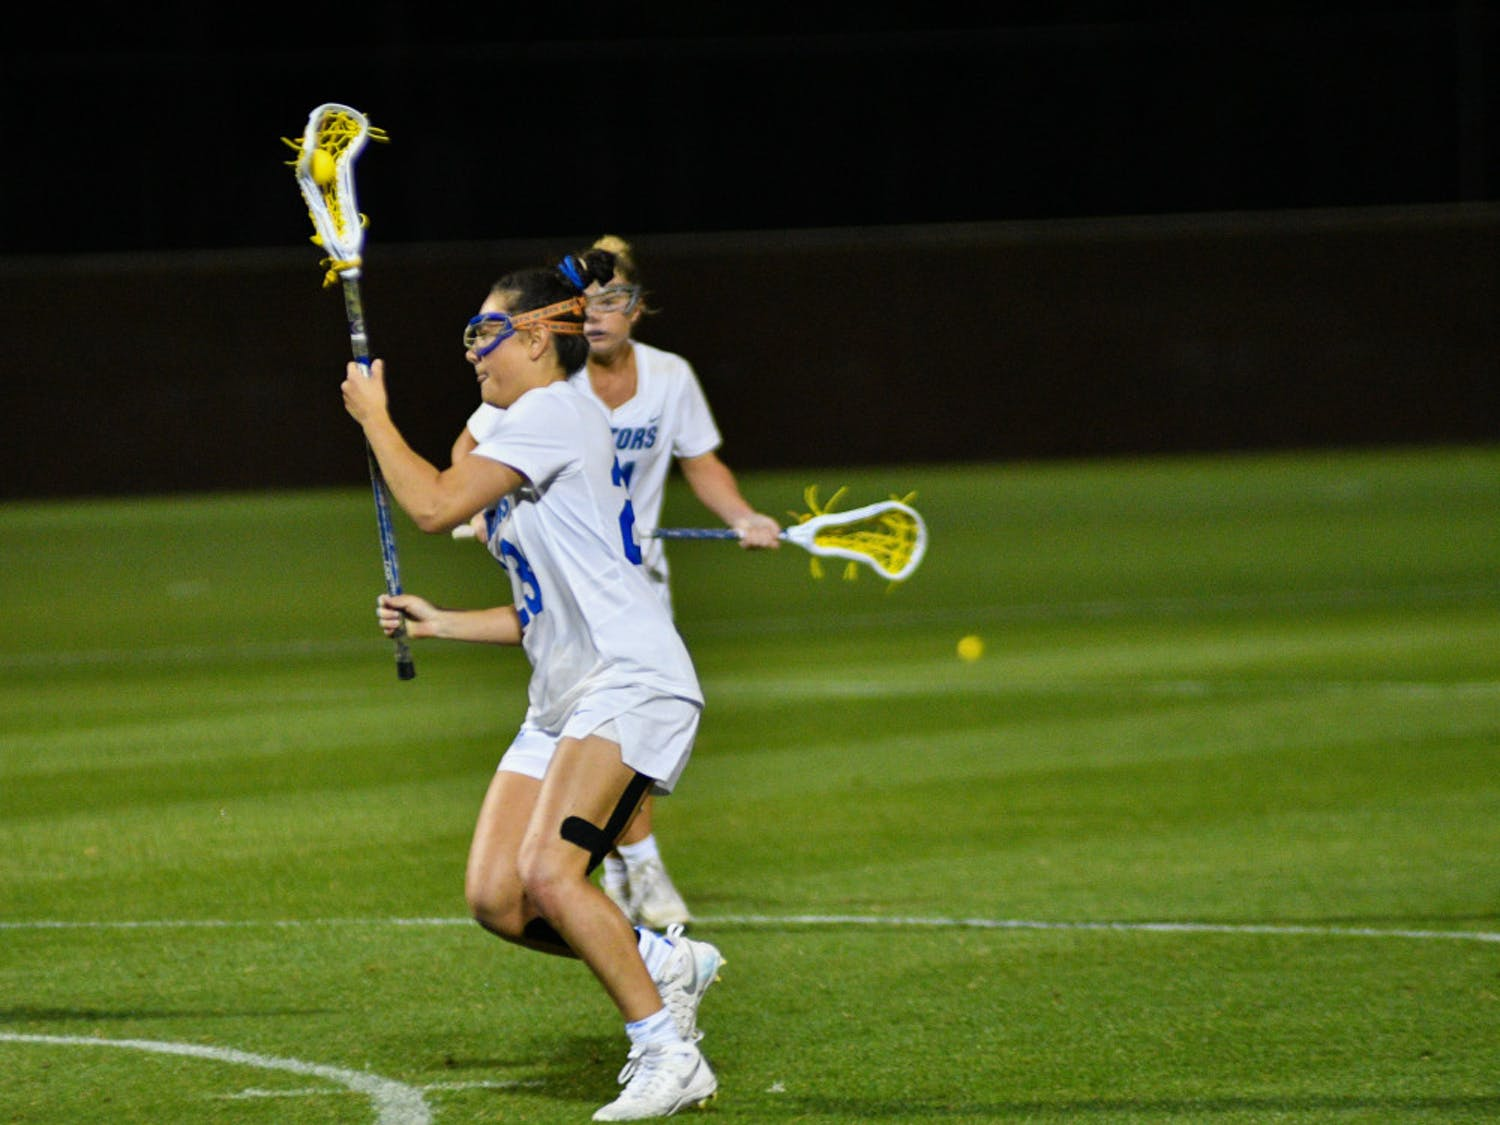 UF midfielder Madi Hall scored four goals in Florida's 22-11 win over Brown on Tuesday at Donald R. Dizney Stadium.